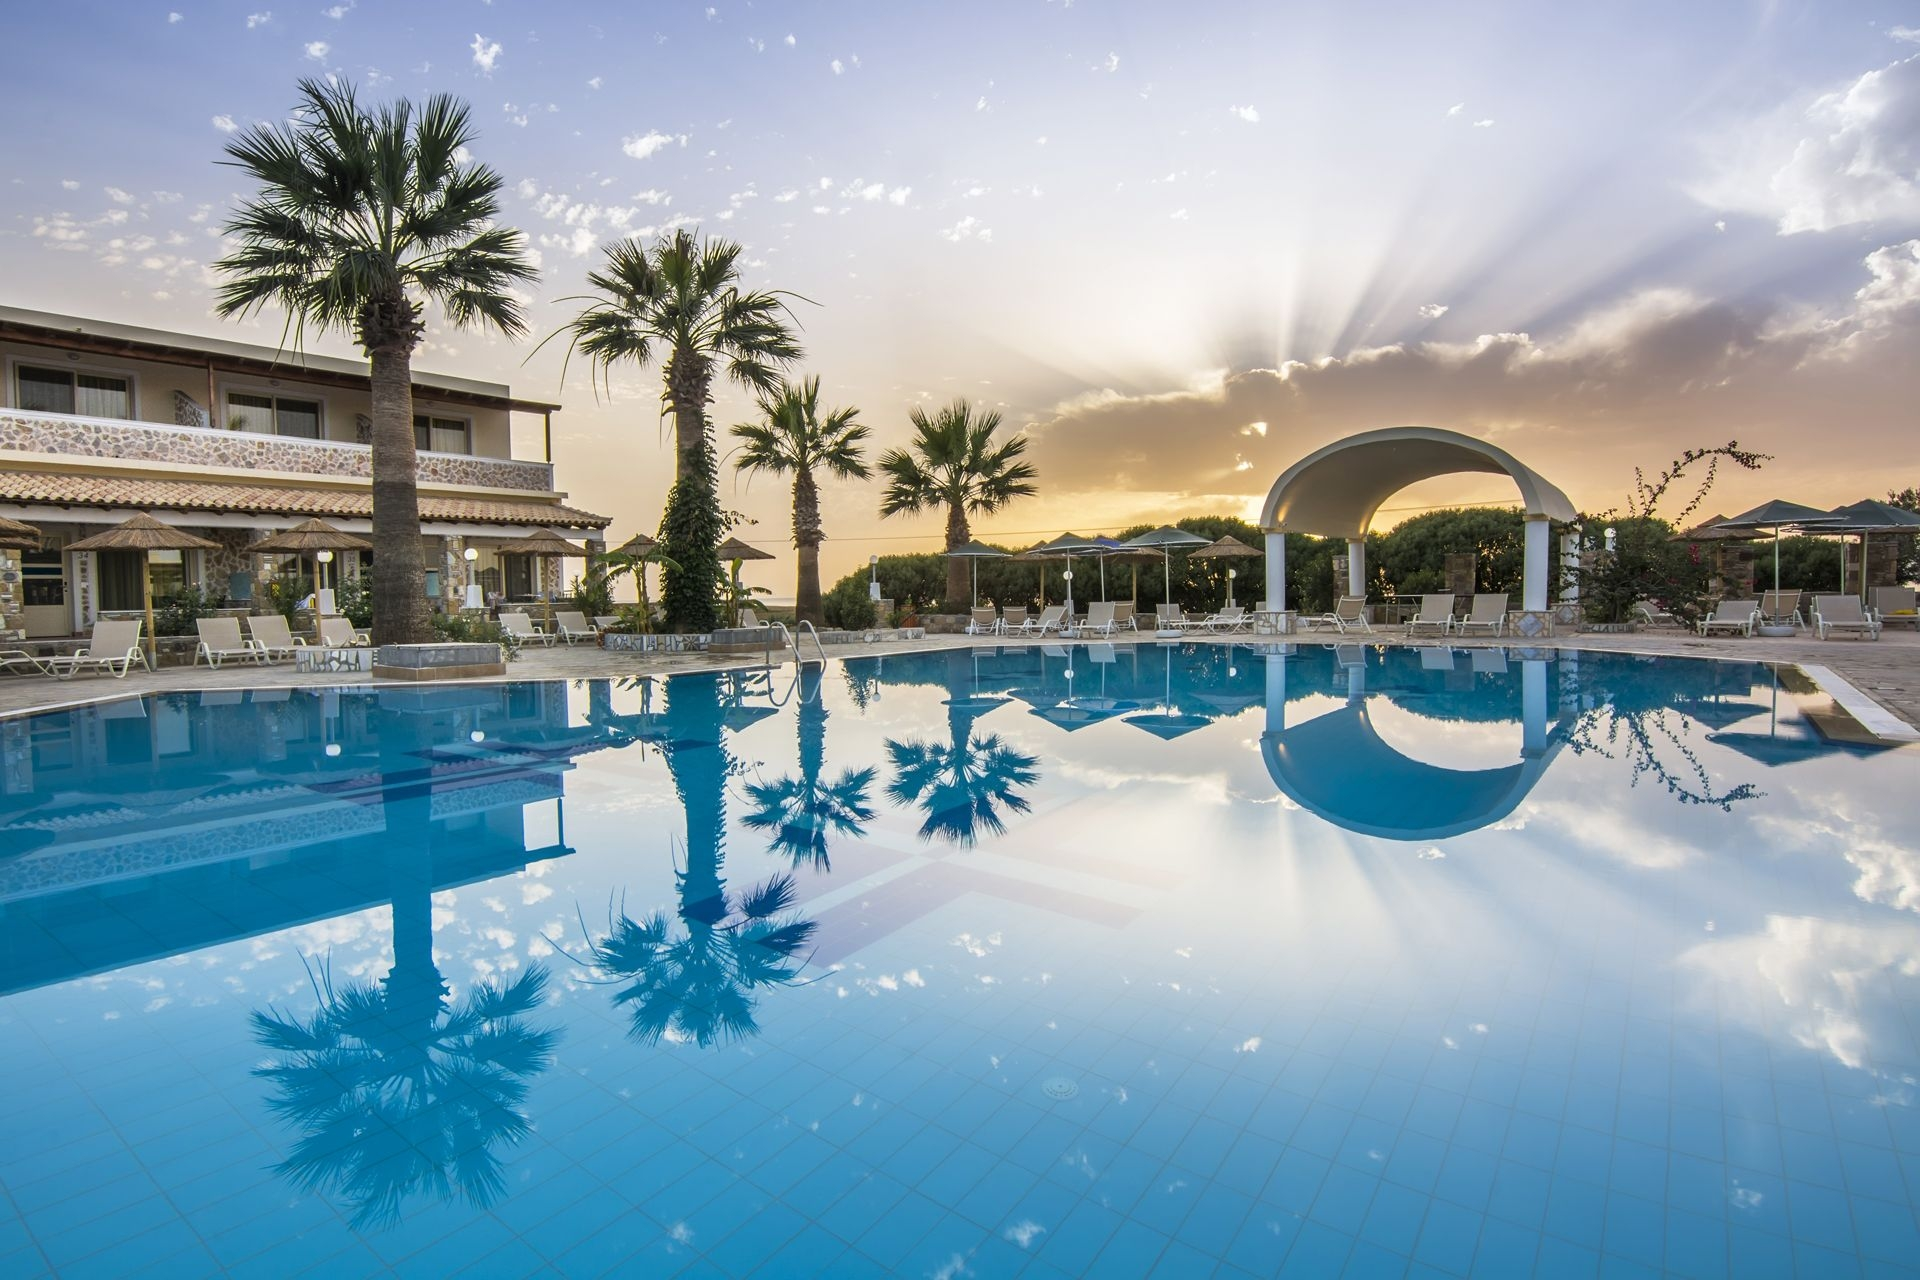 5* Kouros Palace Hotel - Κως, Μαστιχάρι ✦ -41% ✦ 4 Ημέρες (3 Διανυκτερεύσεις) ✦ 2 Άτομα ΚΑΙ ένα Παιδί έως 5 ετών ✦ All Inclusive ✦ 21/07/2019 έως 25/08/2019 ✦ Κοντά στην Παραλία!